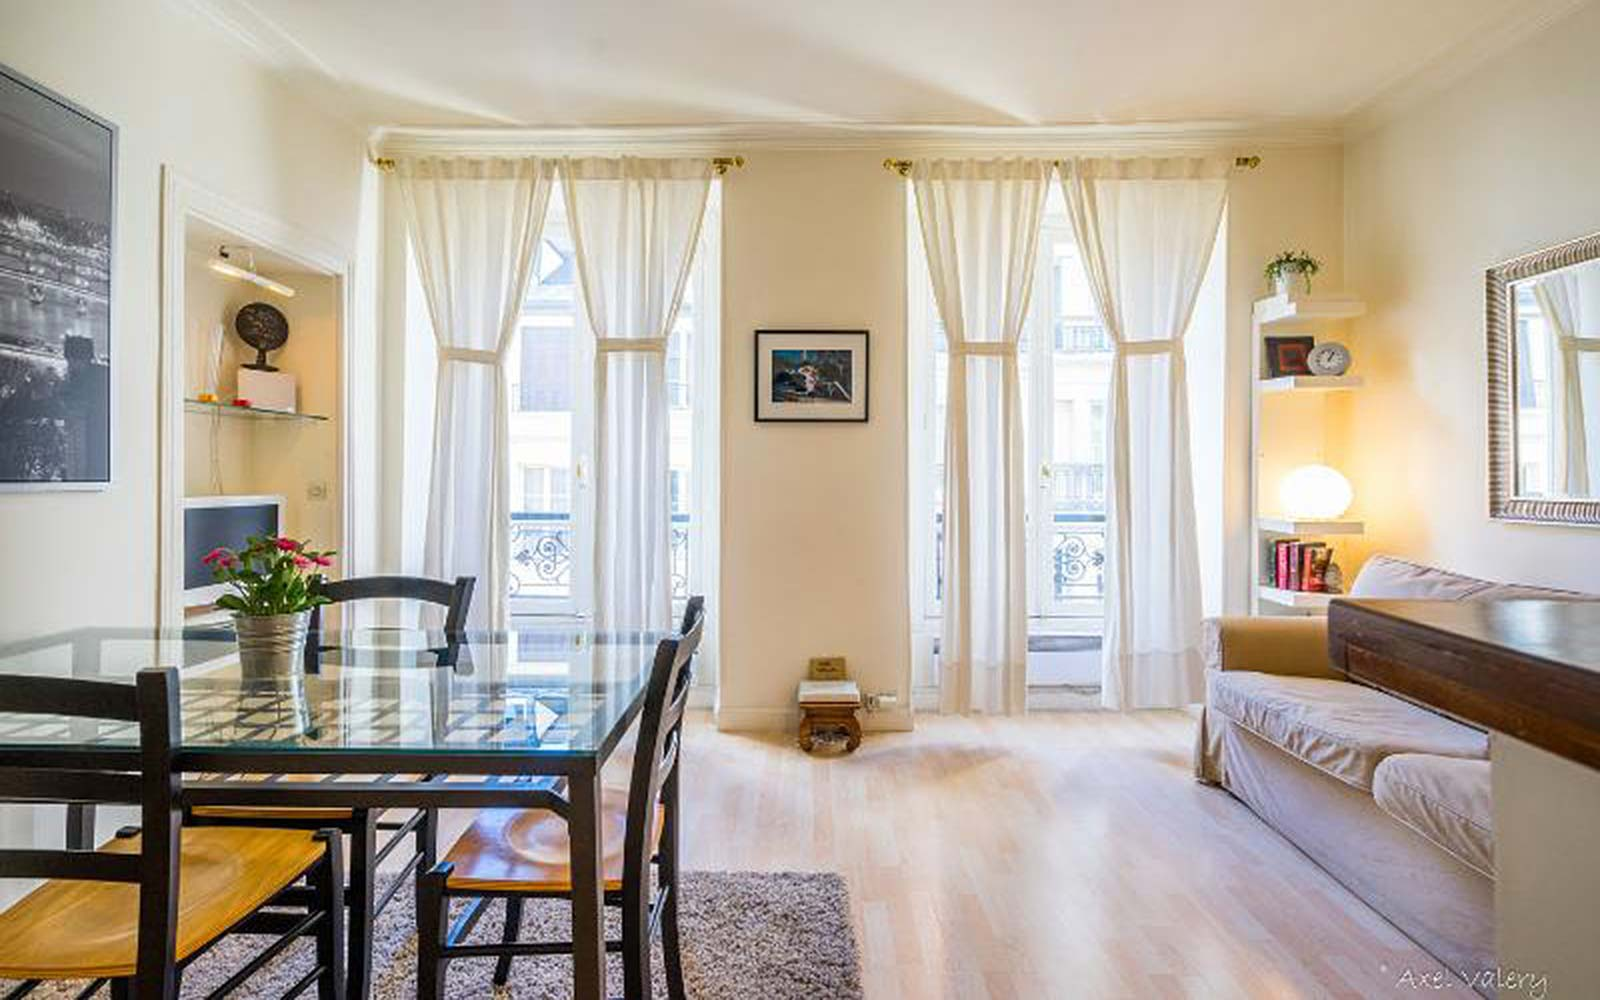 Airbnb Vacation Holiday Rental Paris France Pantheon Saint Germain